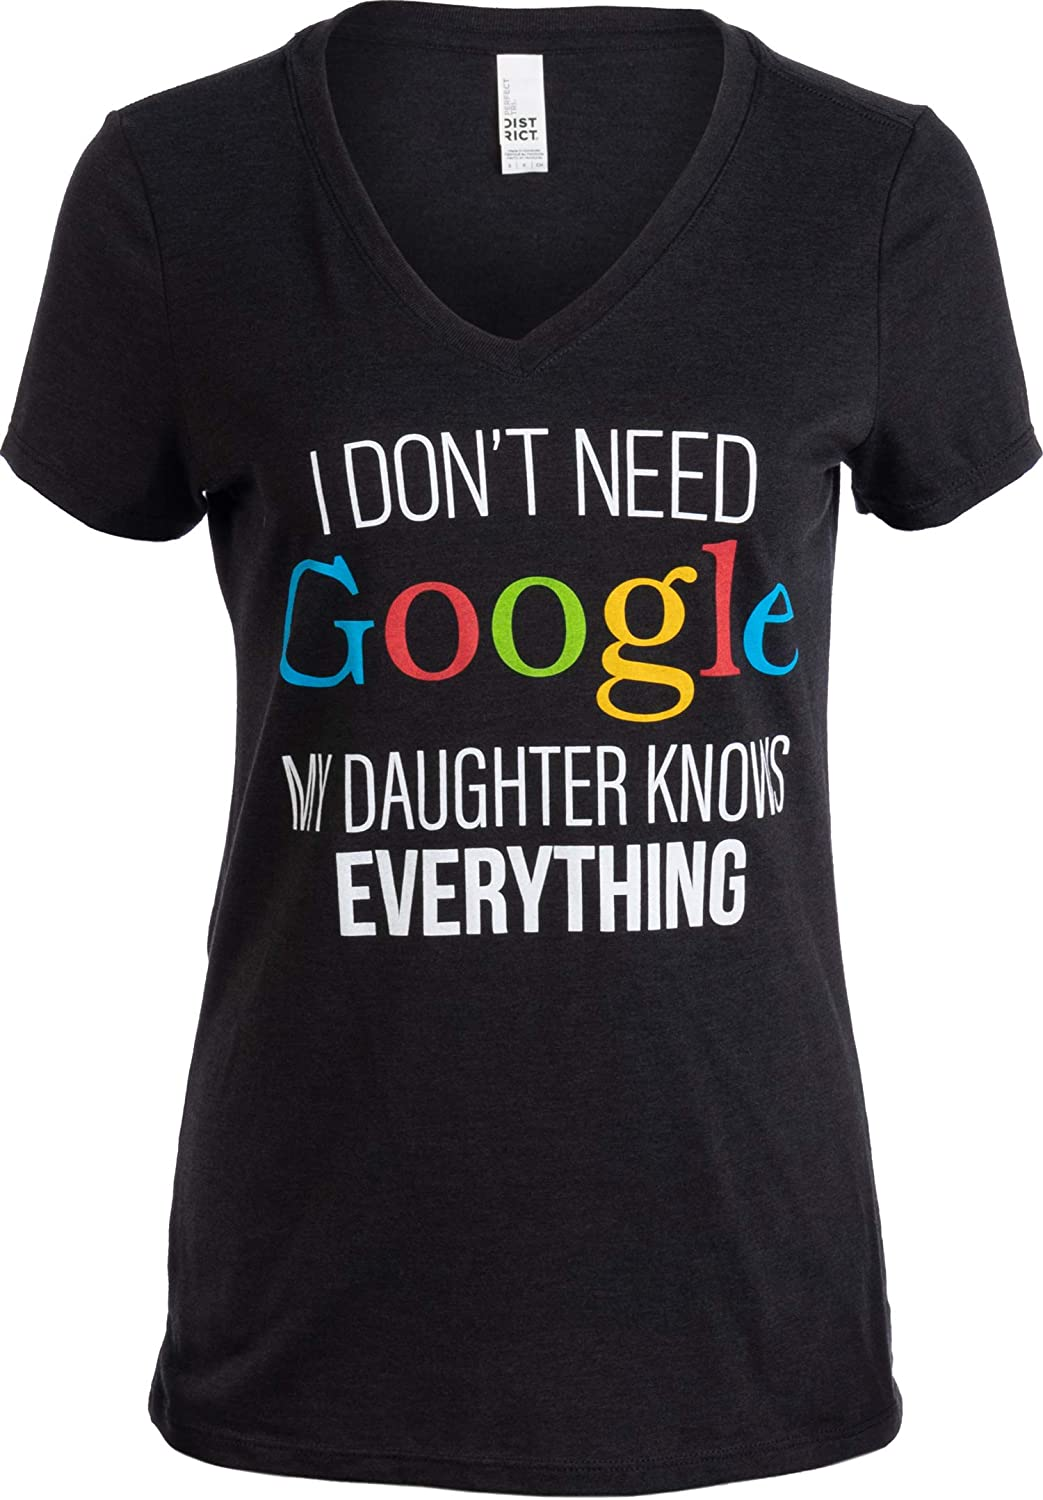 I Don't Need Google, My Daughter Knows Everything   Funny Mom V-Neck Women T-Shirt